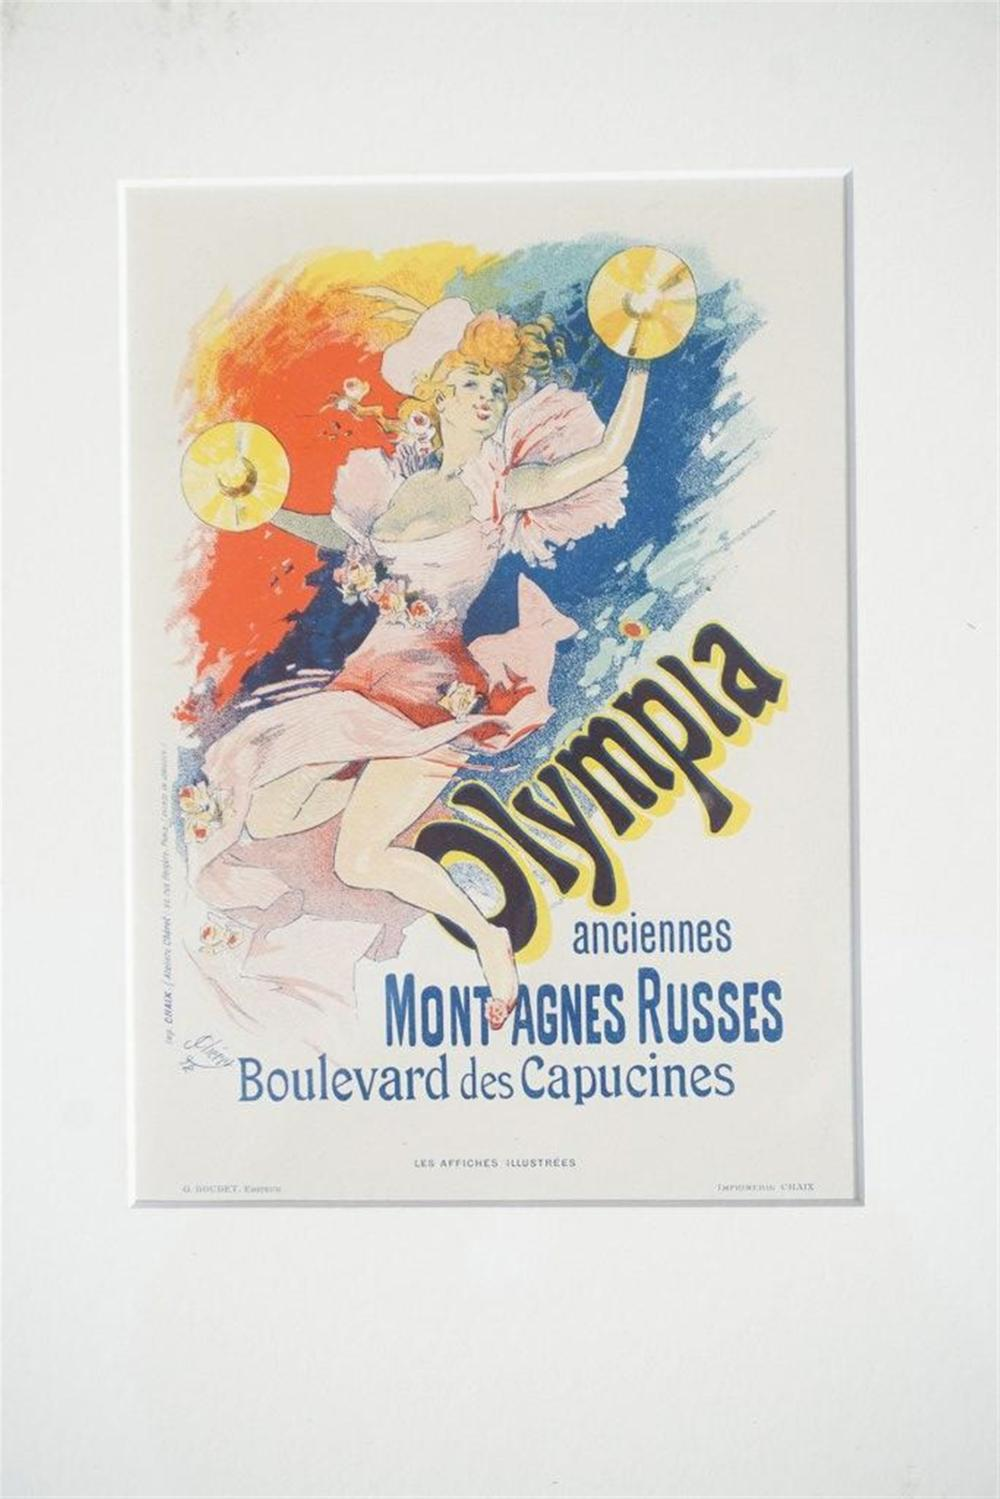 "1896 CHERET OLYMPIA ANCIENNES MONTAGNES RUSSES STONE LITHO FRENCH POSTER, SHEET SIZE 8 3/4"" X 12 1/4"", EXCELLENT CONDITION, SHRINK WRAPPED AND MATTED, FROM RETIRED DEALERS COLLECTION. IMPRIMERIE CHAIX."